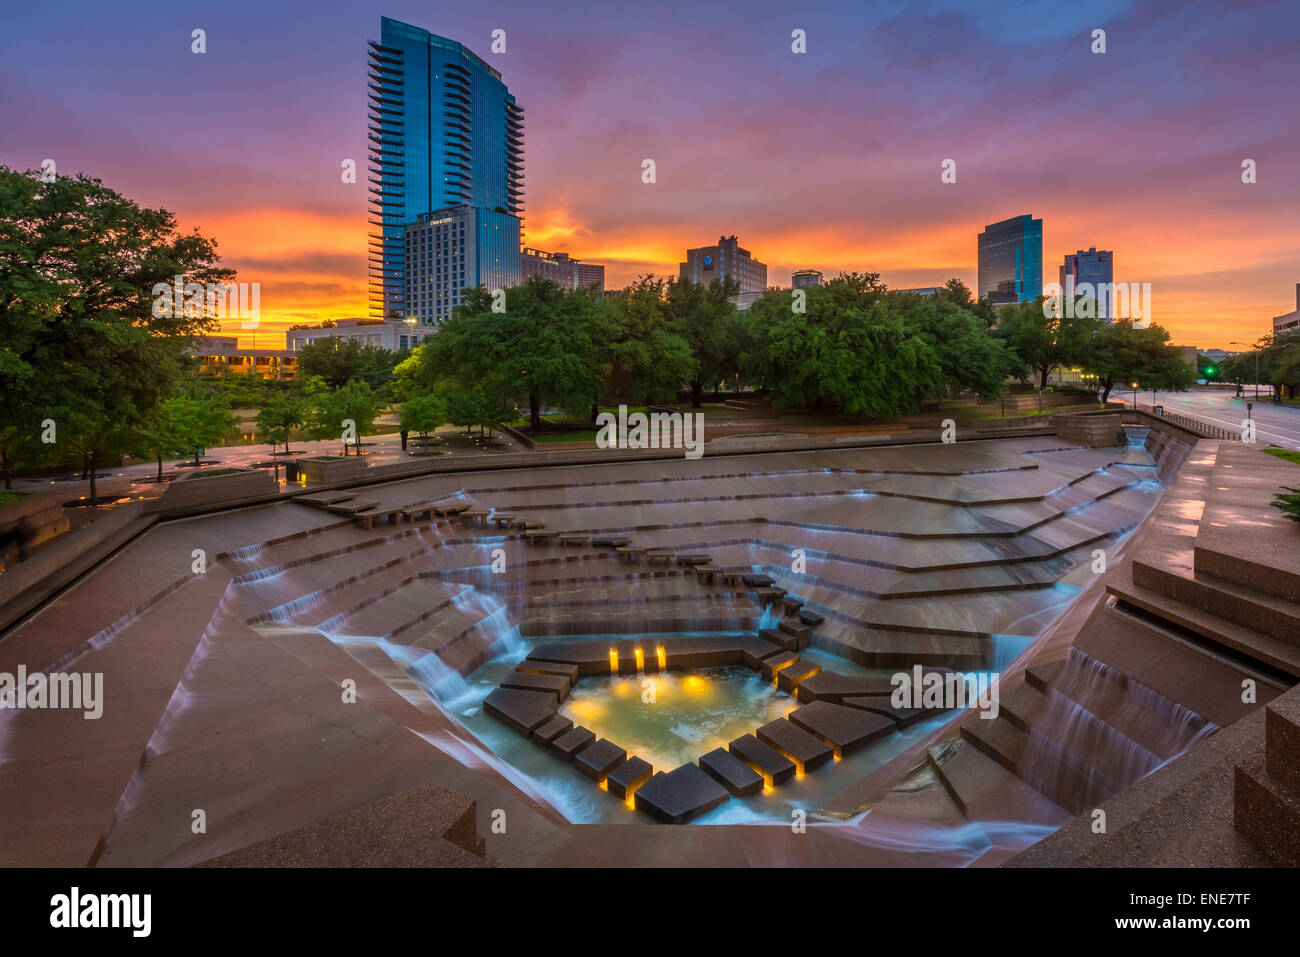 The Fort Worth Water Gardens, built in 1974, is located on the south end of downtown Fort Worth, Texas - Stock Image